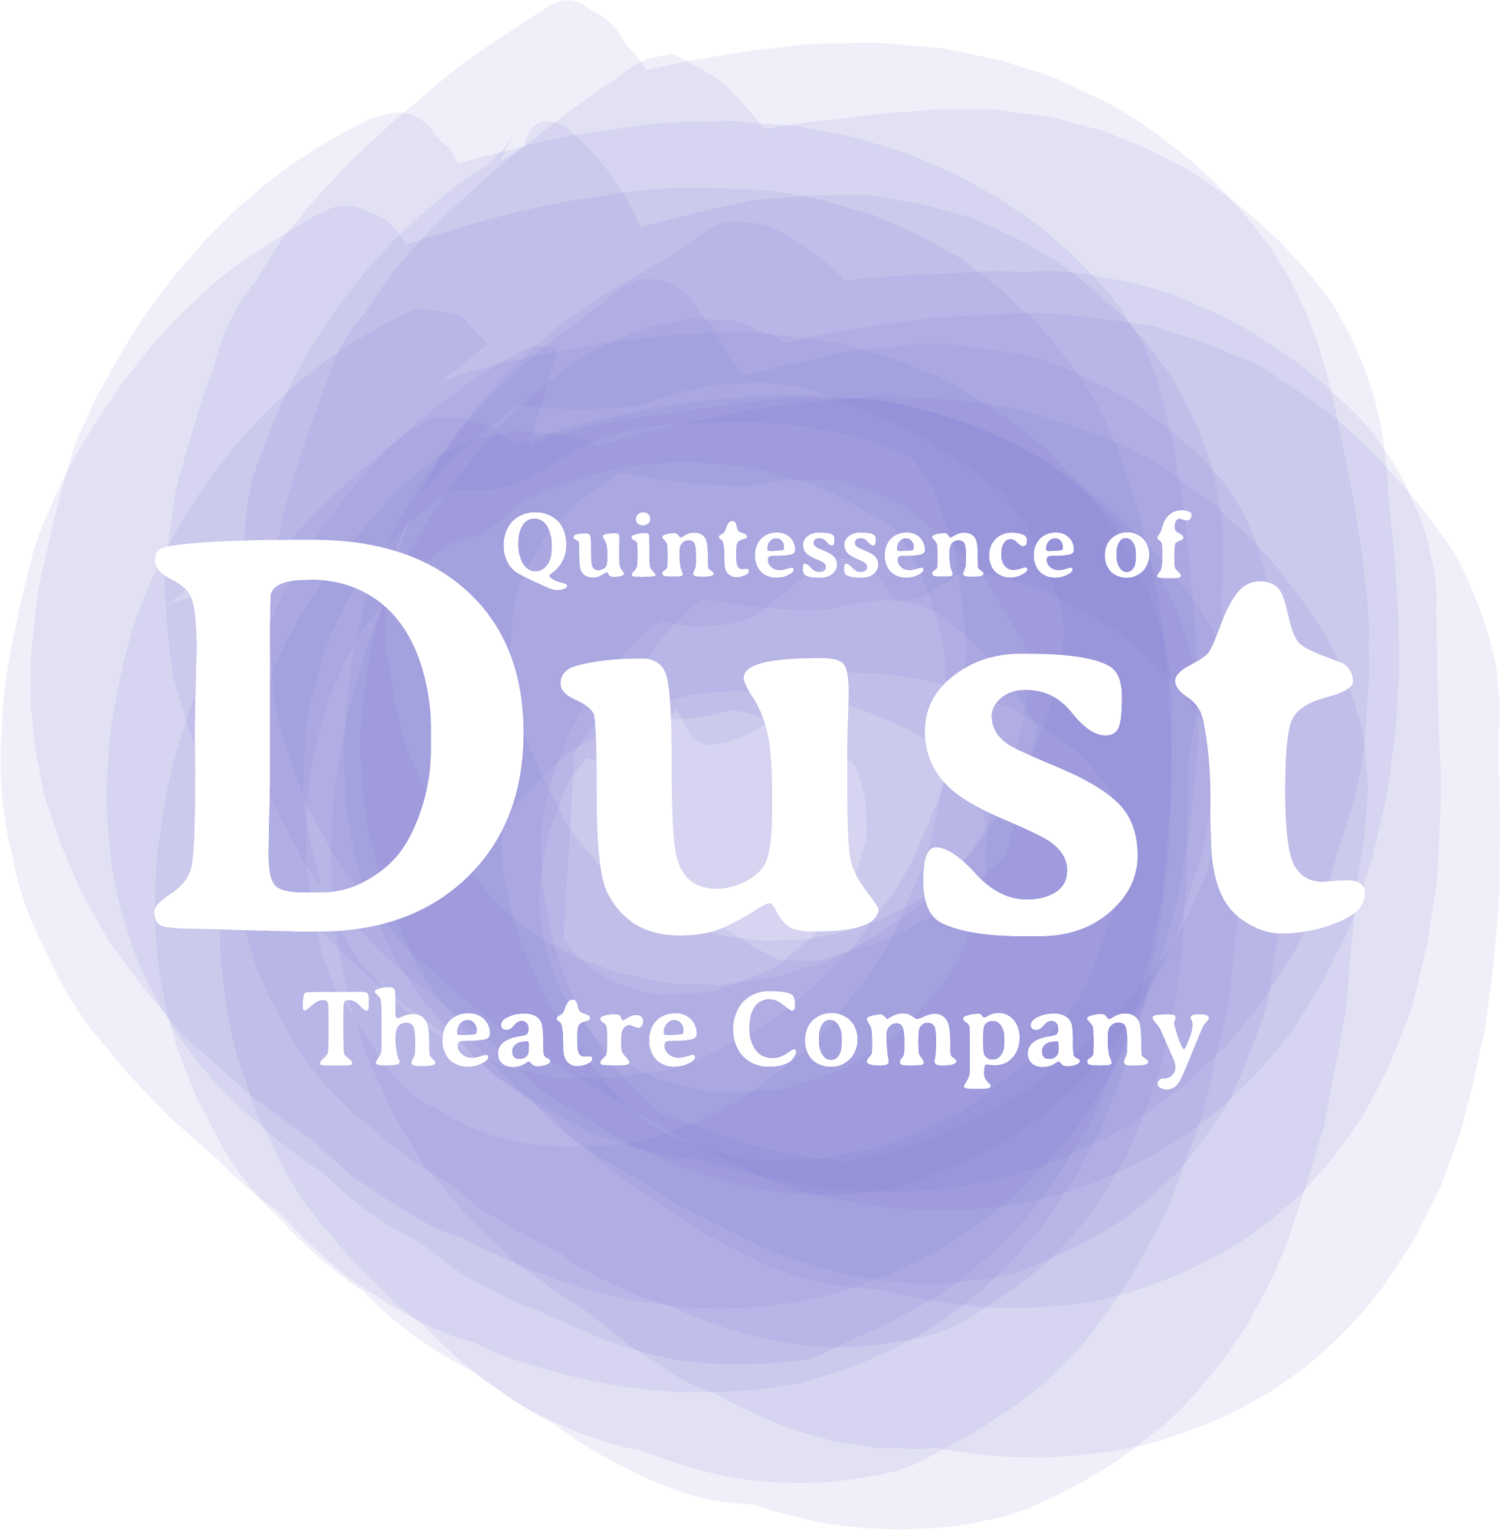 Quintessence of Dust